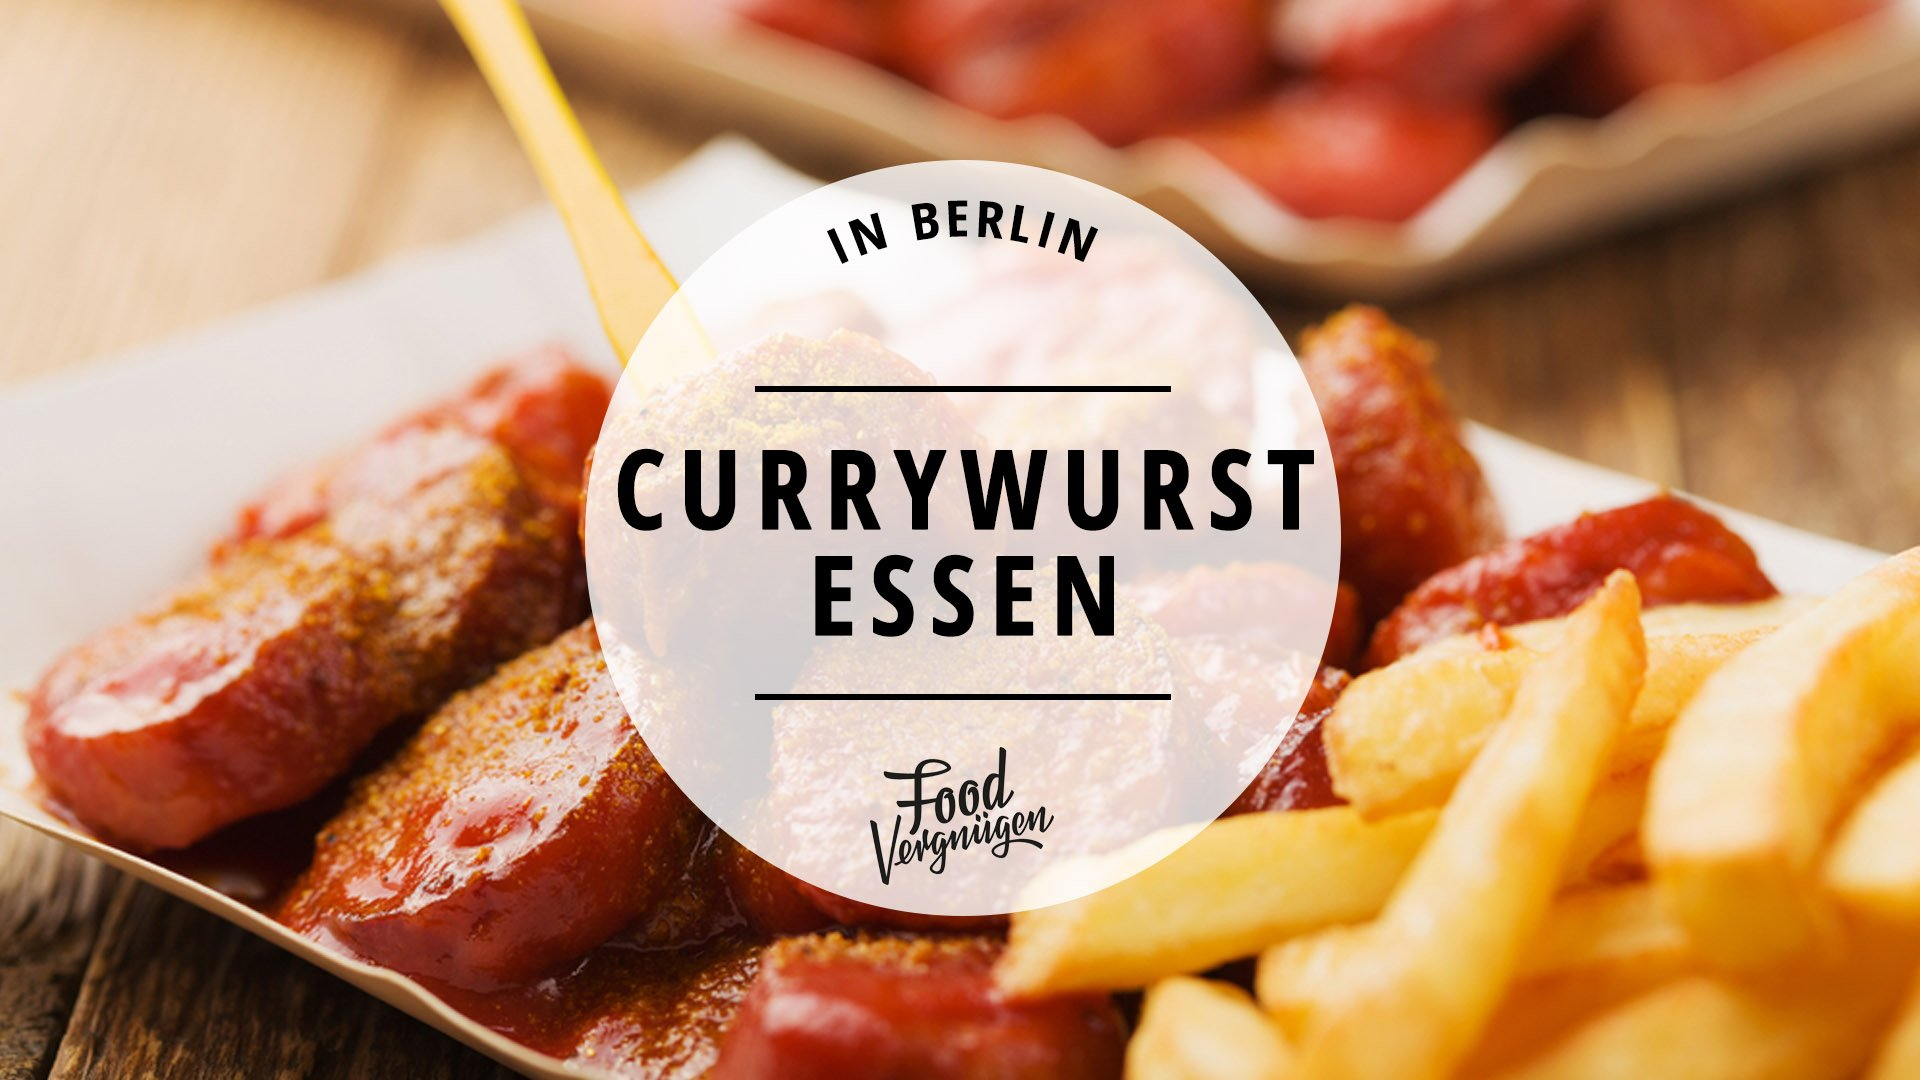 hier k nnt ihr die beste currywurst in berlin essen mit vergn gen berlin. Black Bedroom Furniture Sets. Home Design Ideas